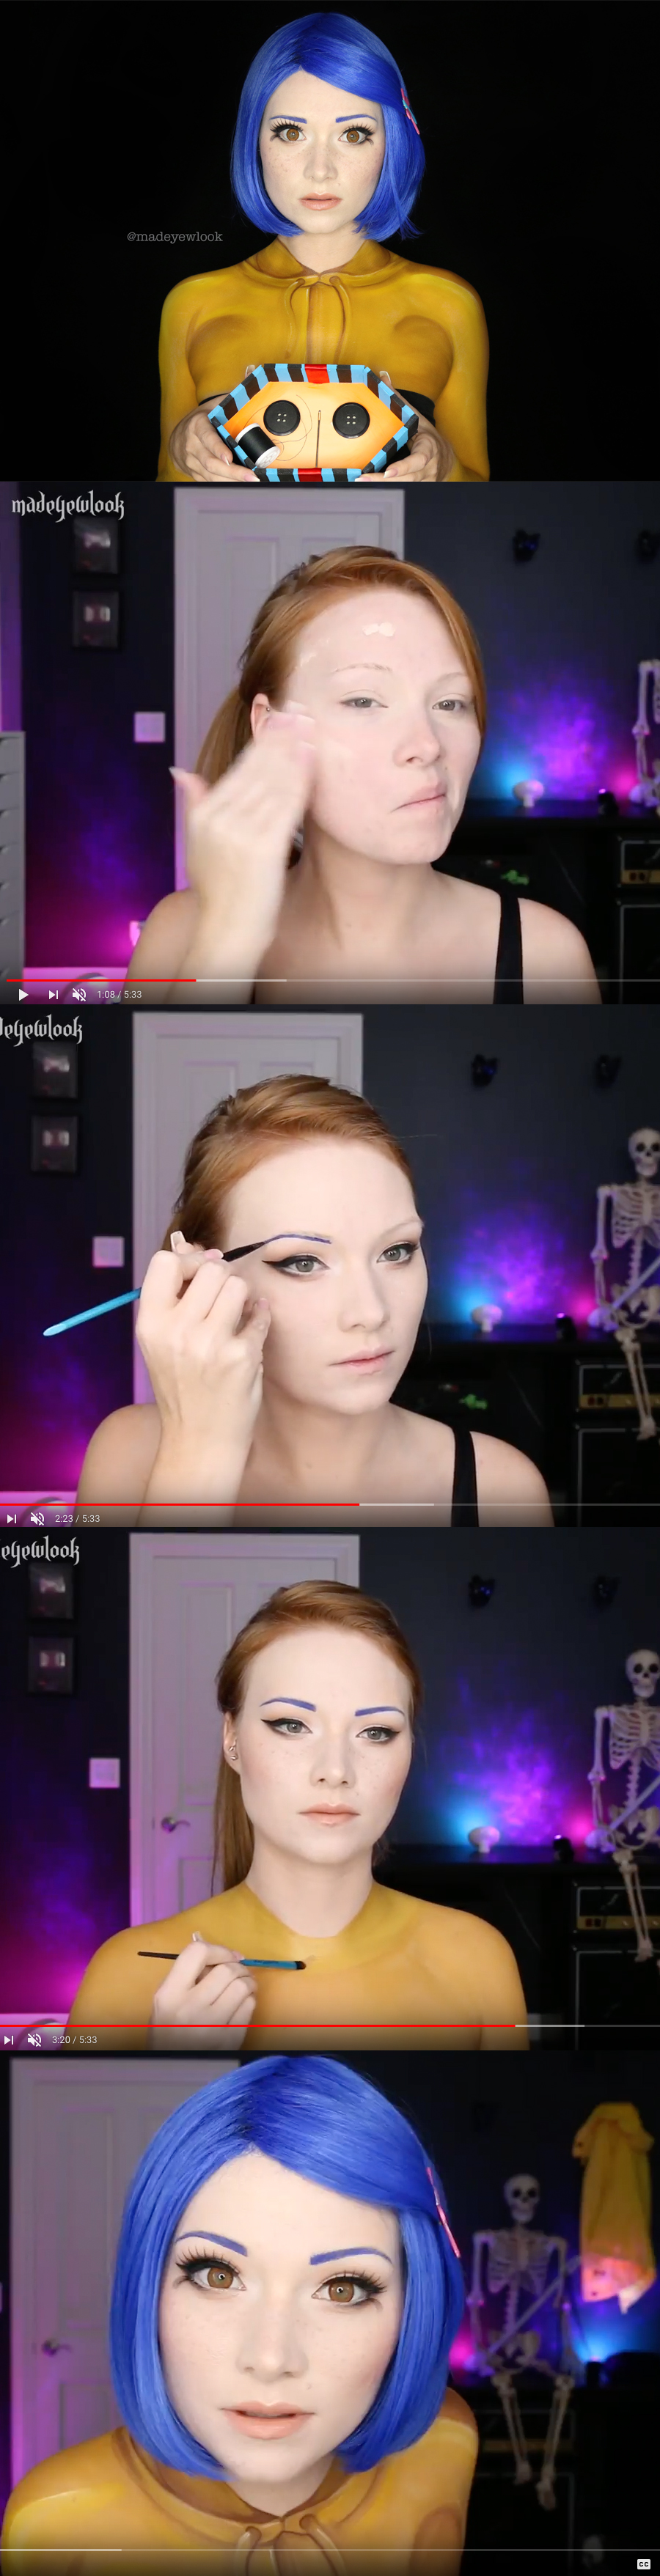 Coraline makeup for halloween clothing is also painted youtube